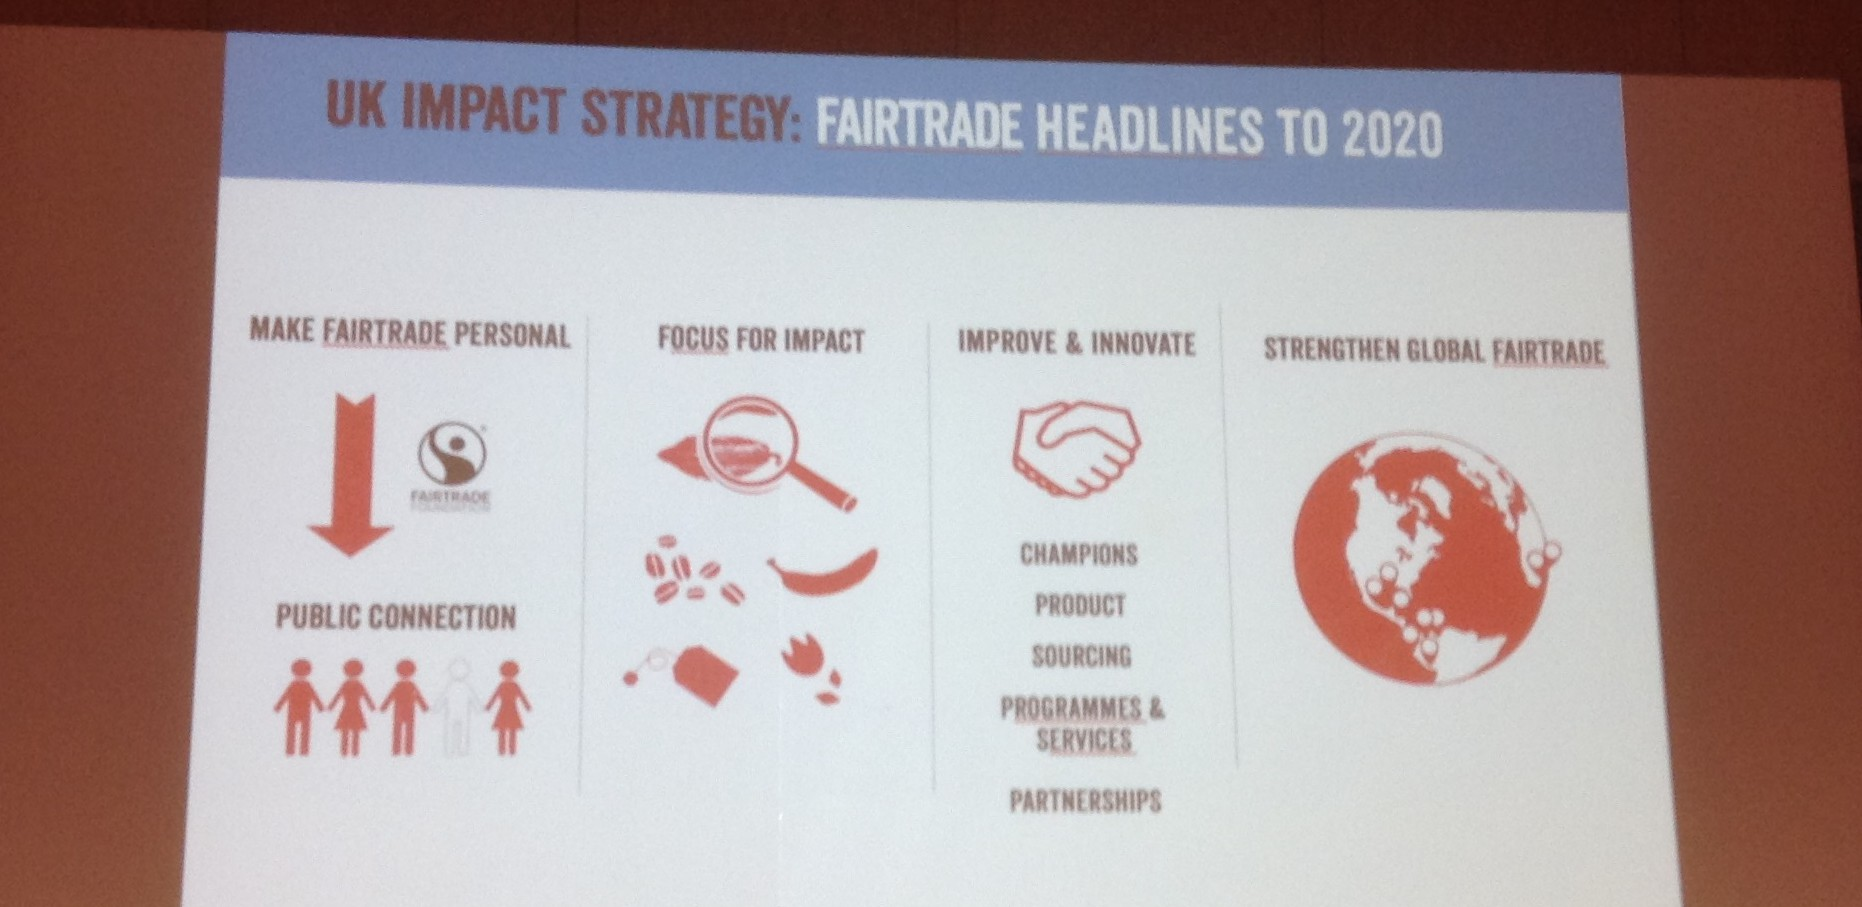 National Fairtrade Supporters Conference 2015 - UK Impact Strategy